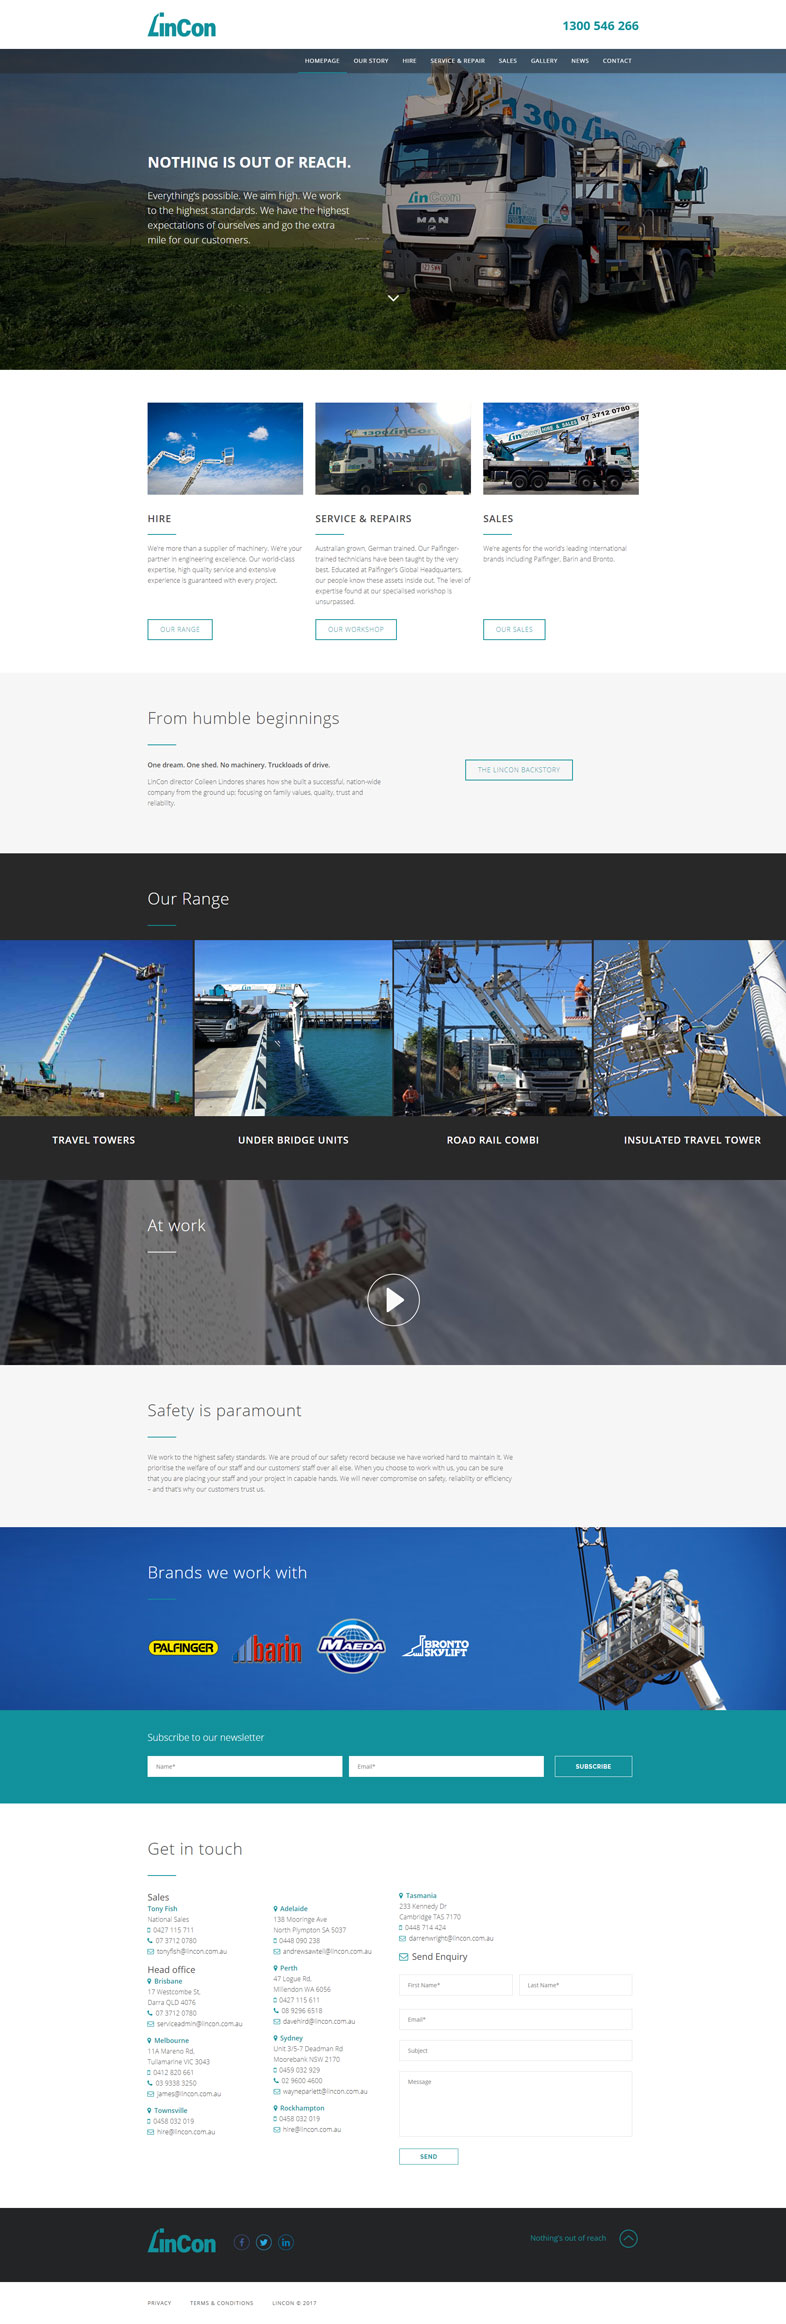 Lincon Hire's website design of the homepage